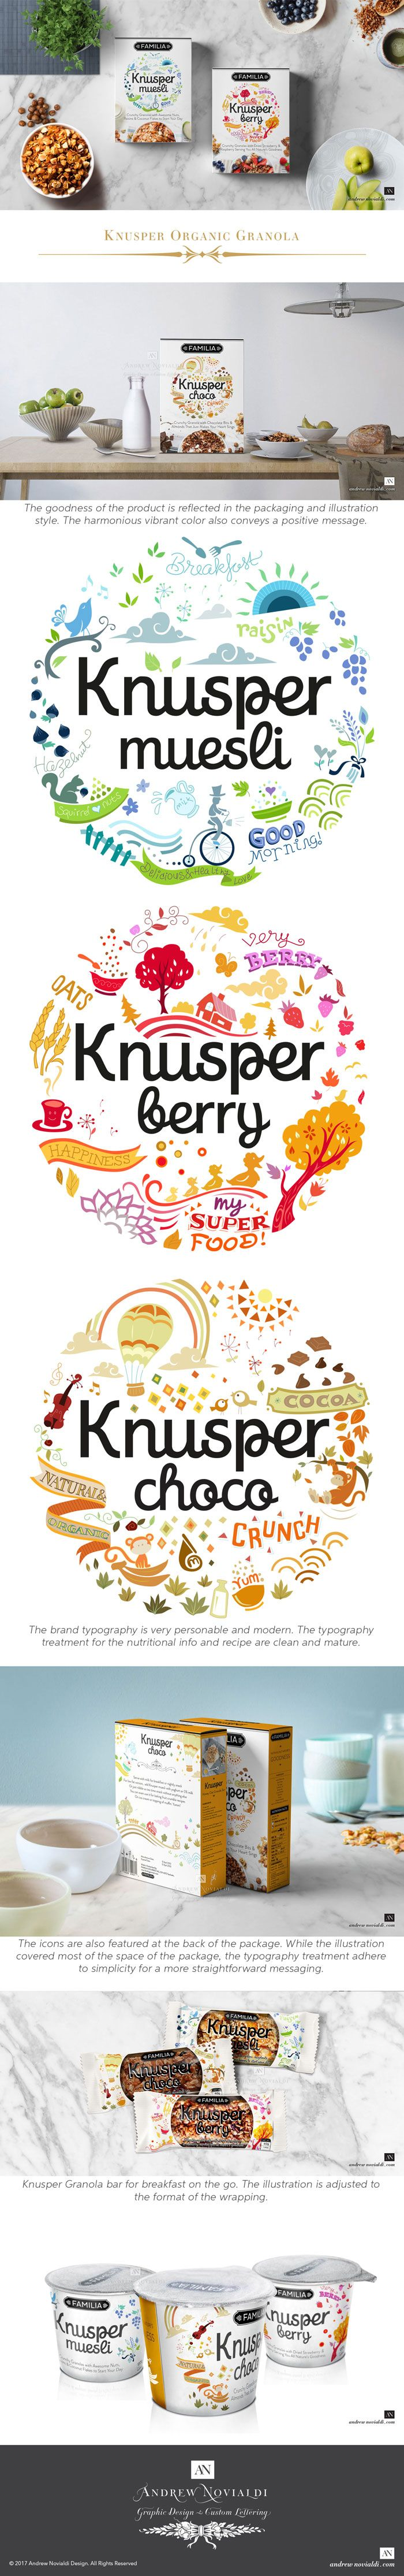 Knusper is proud to offer a product that is not only it is an organic and all natural grain diet but also one that tastes great. This brand is marketed as organic granola for young adults and millennials. The illustration surrounding the brand not only describe the flavour of each product but also exudes a happy and healthy lifestyle. The brand typography is very personable and modern. The typography treatment for the nutritional info and recipe are clean and mature.